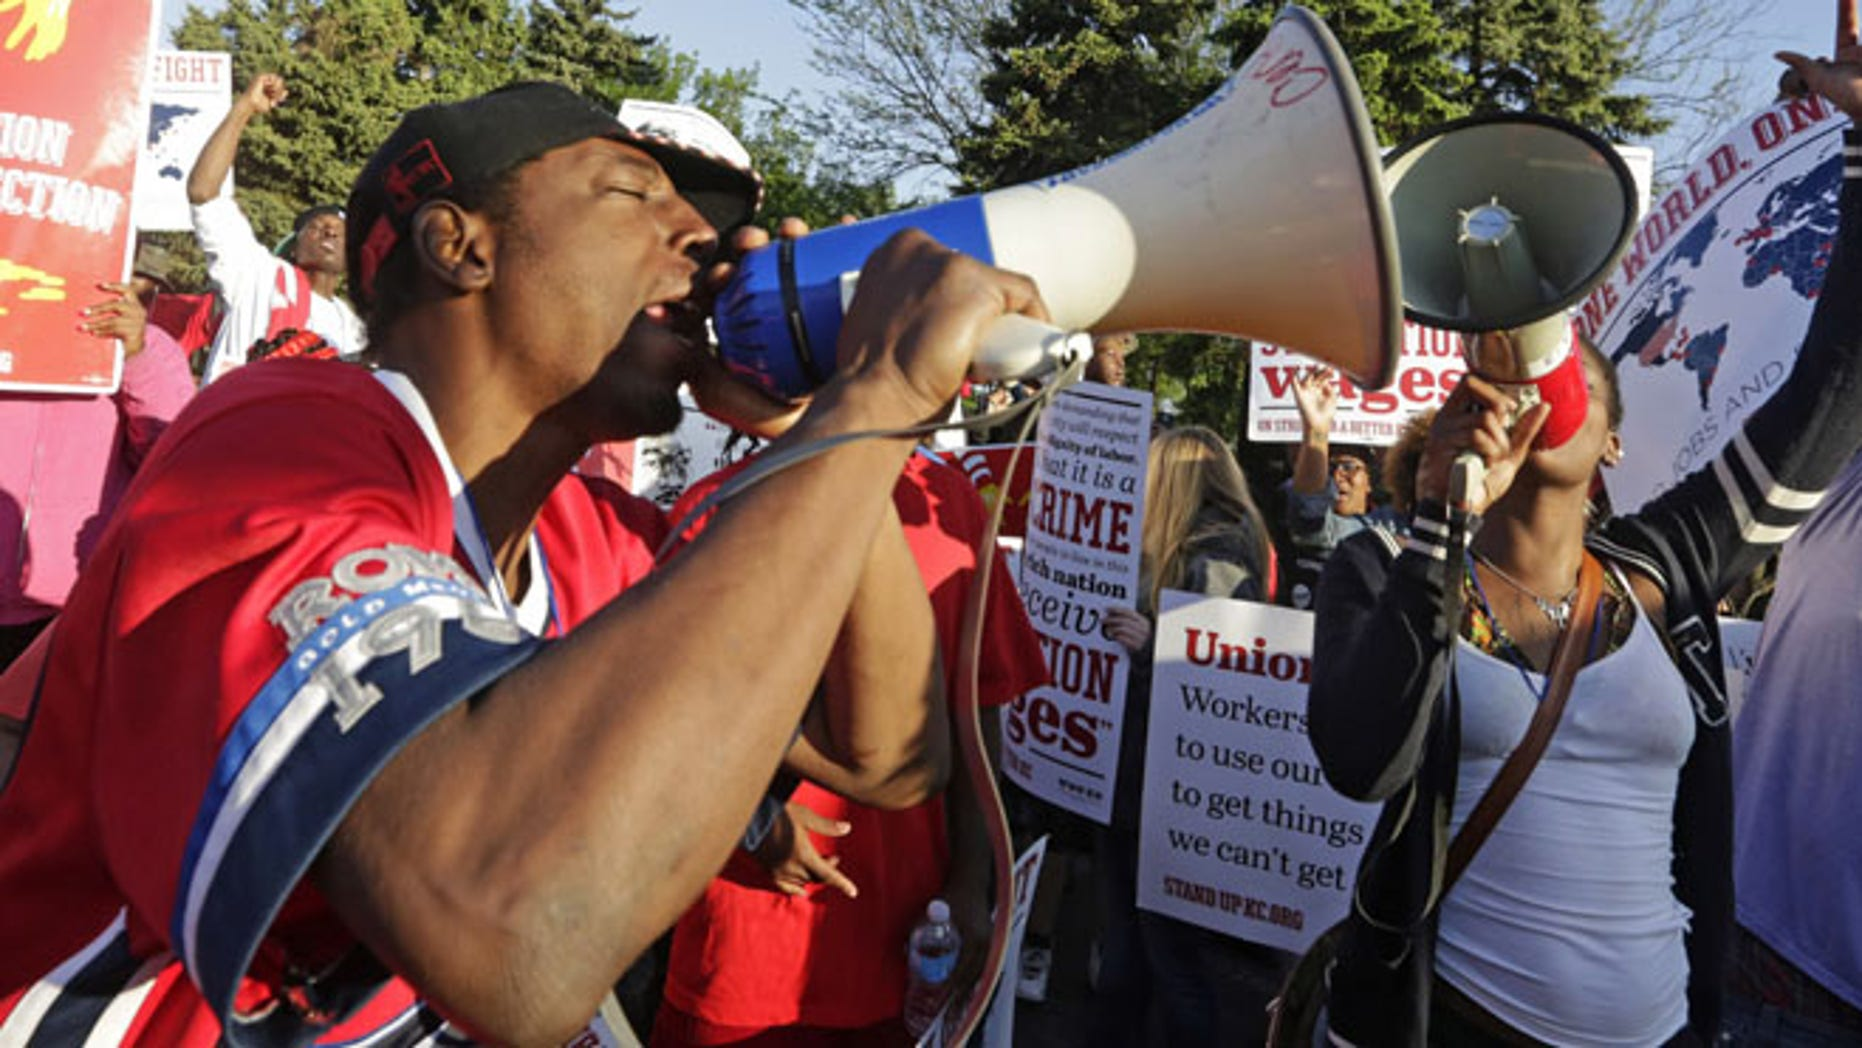 May 22, 2014: Protesters gather outside of the McDonald's Corporation headquarters in Oak Brook, Ill., the annual shareholders meeting demonstrating for higher wages and the right to unionize. (AP)